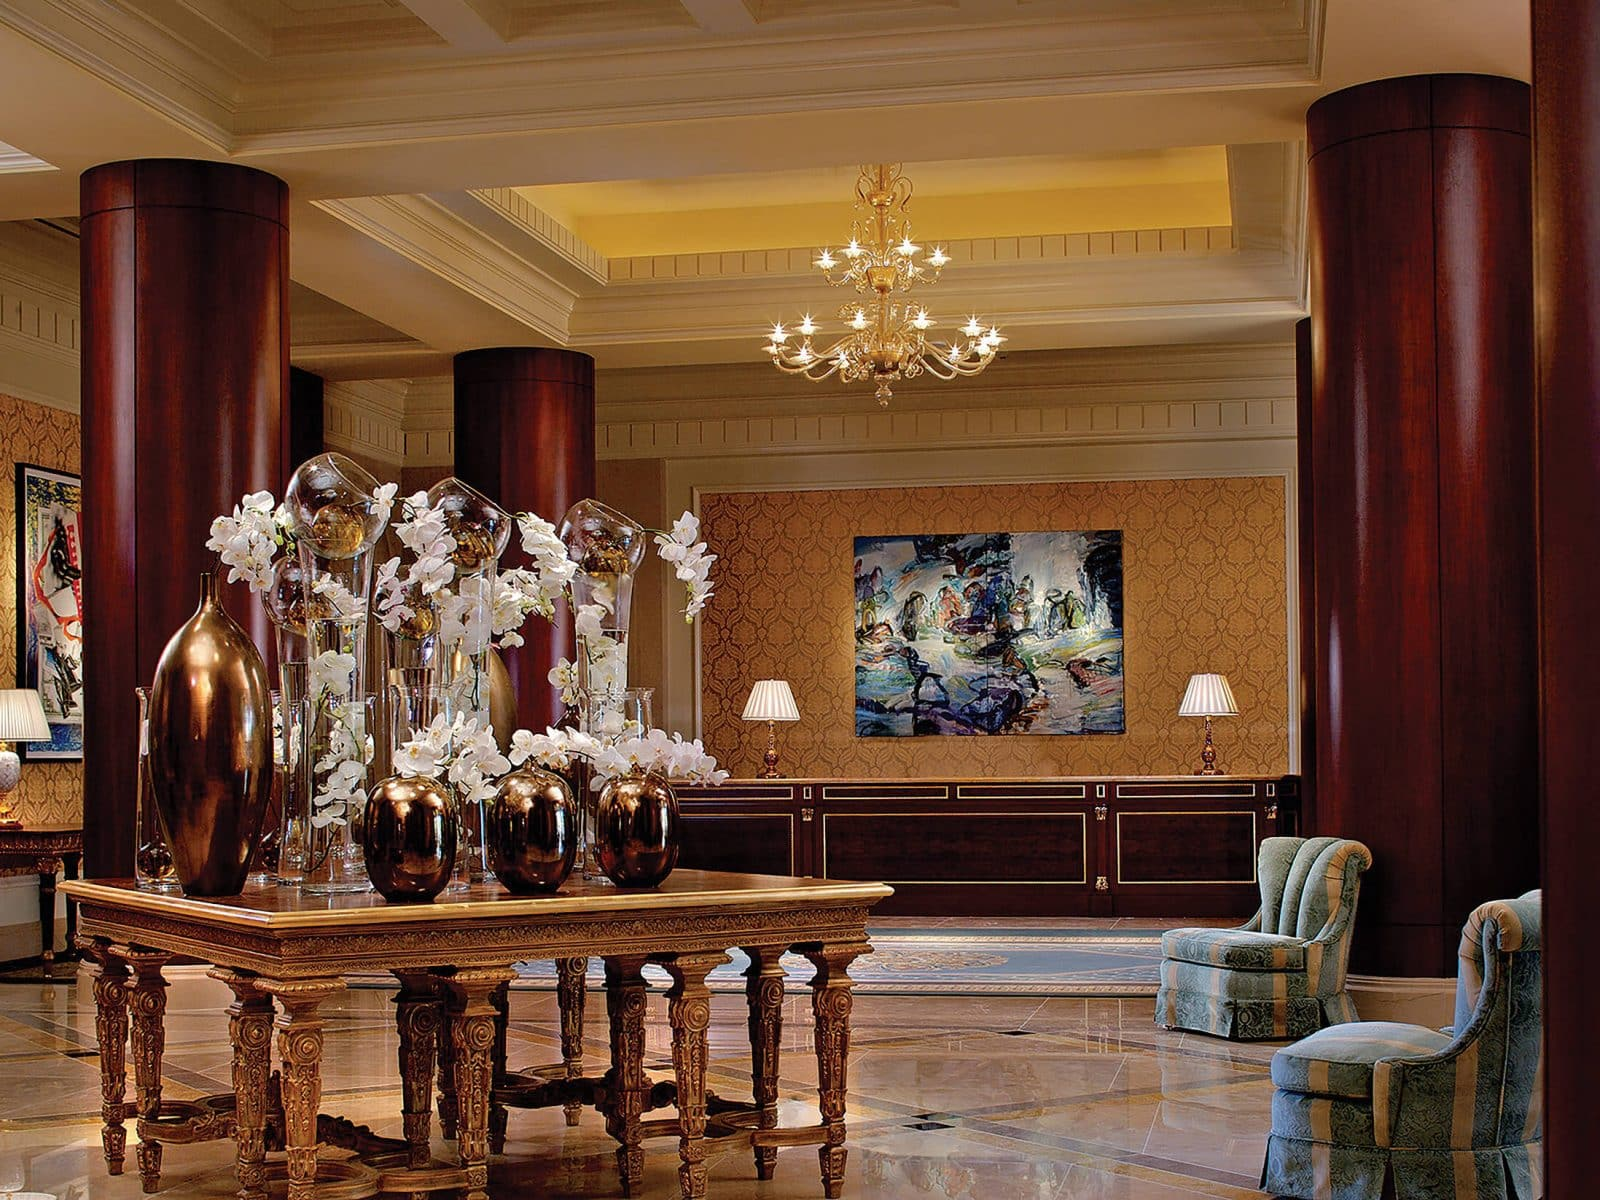 The Ritz-Carlton, Dallas is one of the 50 Best Hotels in the United States